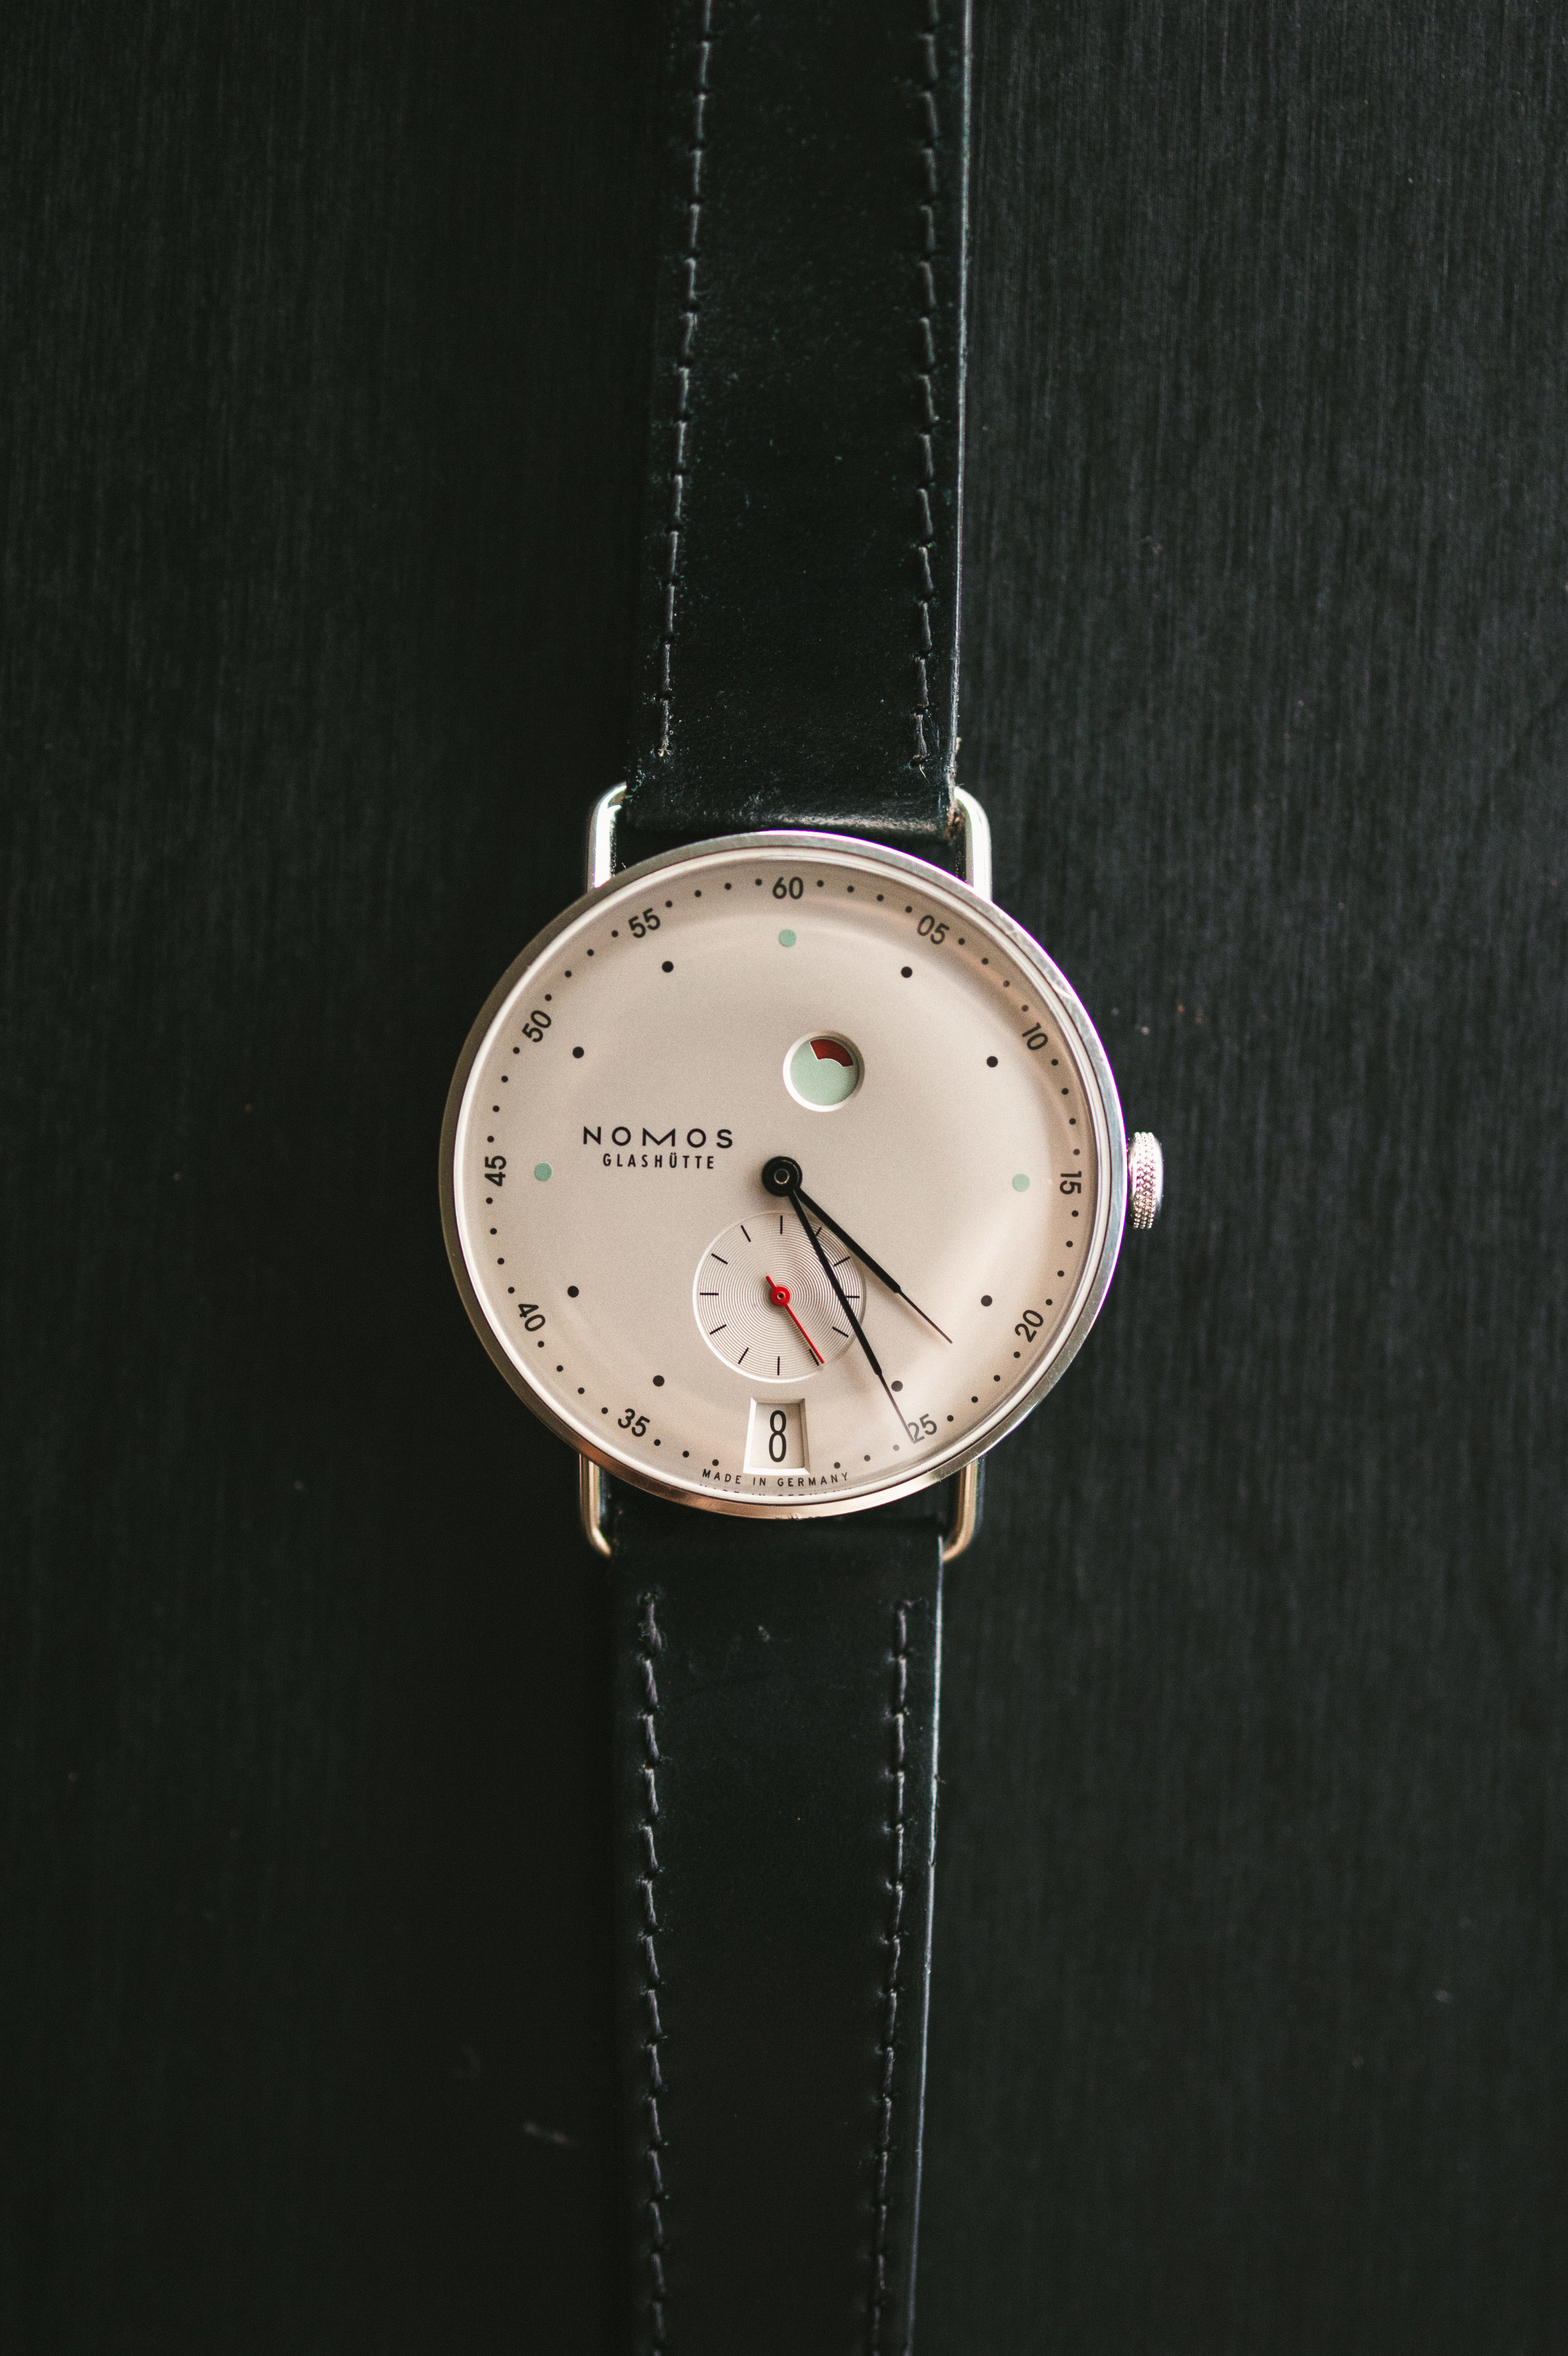 Photo from FS listing on WatchUseek forum, click through for more pictures and to contact the seller.